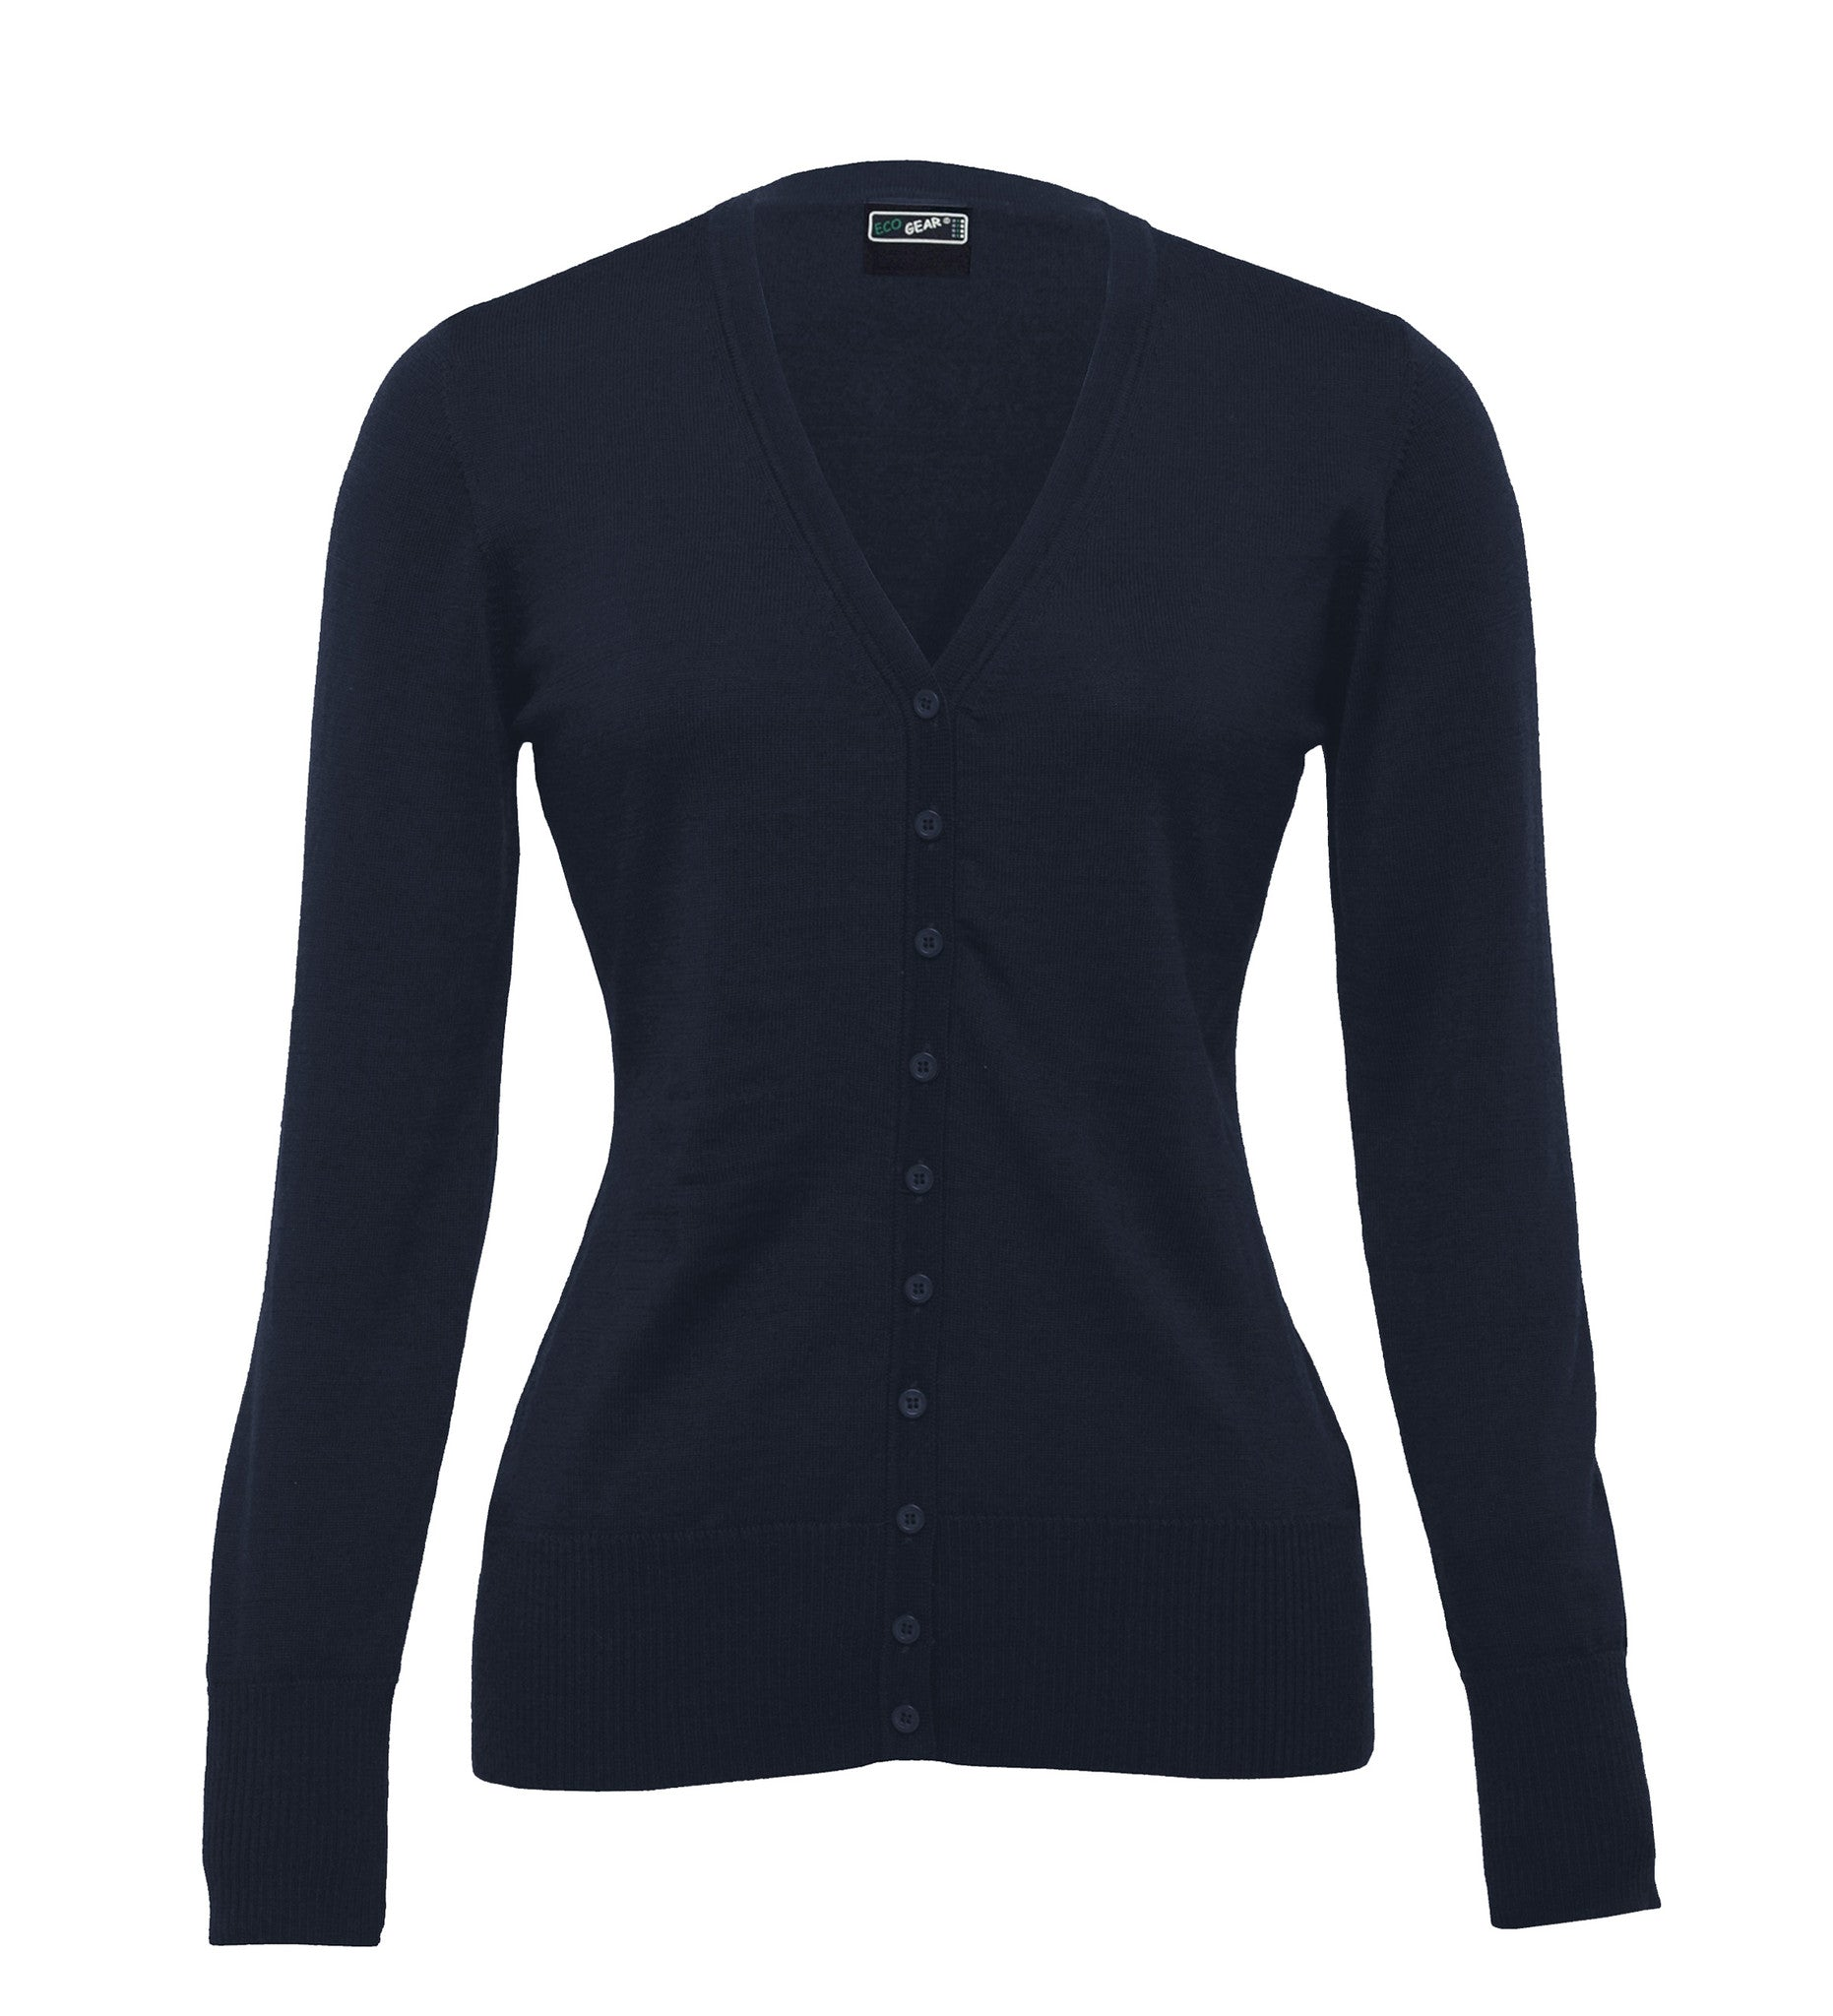 Gear For Life Merino Cardigan – Womens